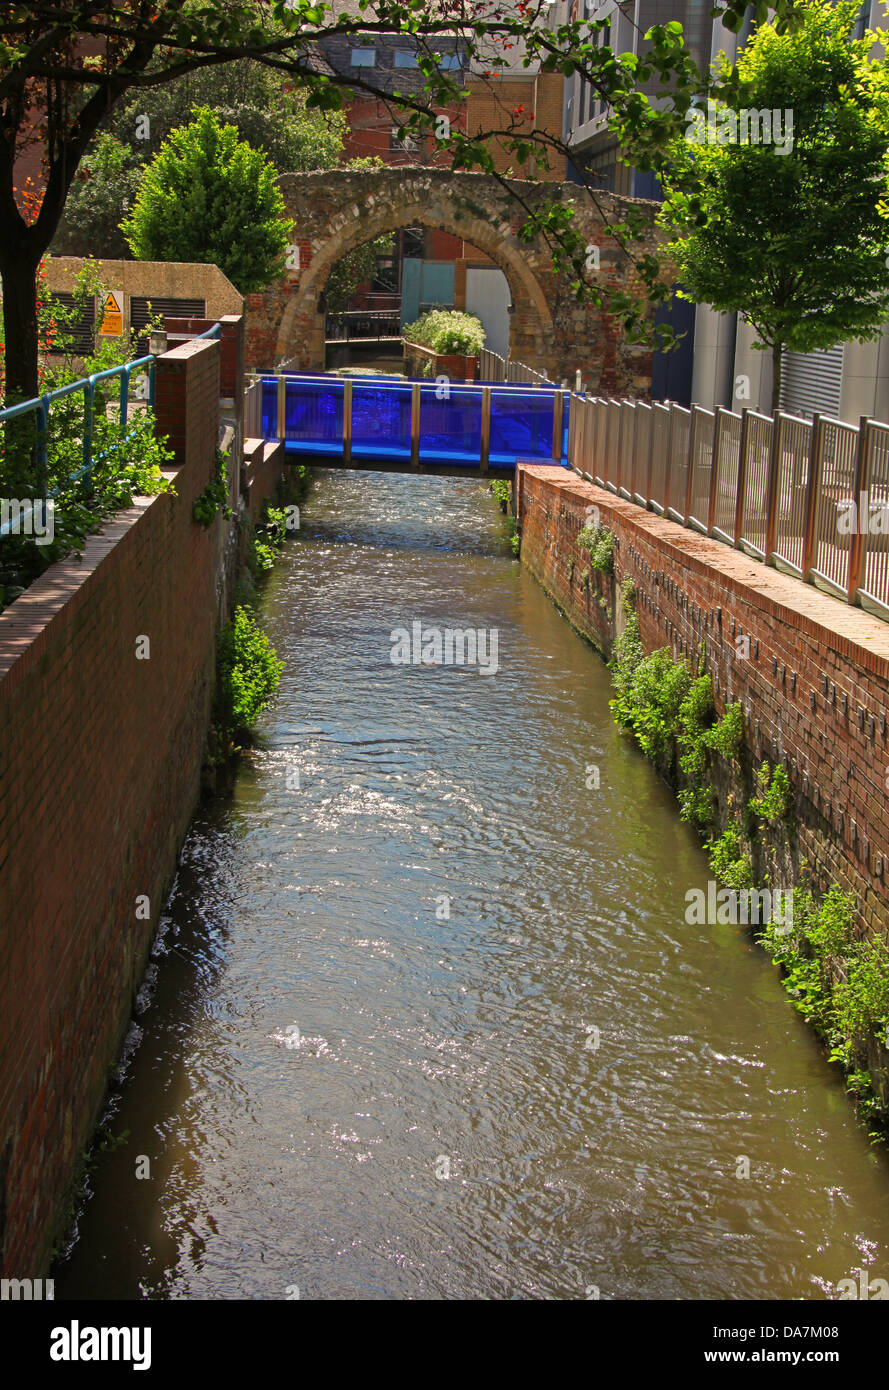 A Blue glass bridge spanning a brook in a historical area of town. - Stock Image